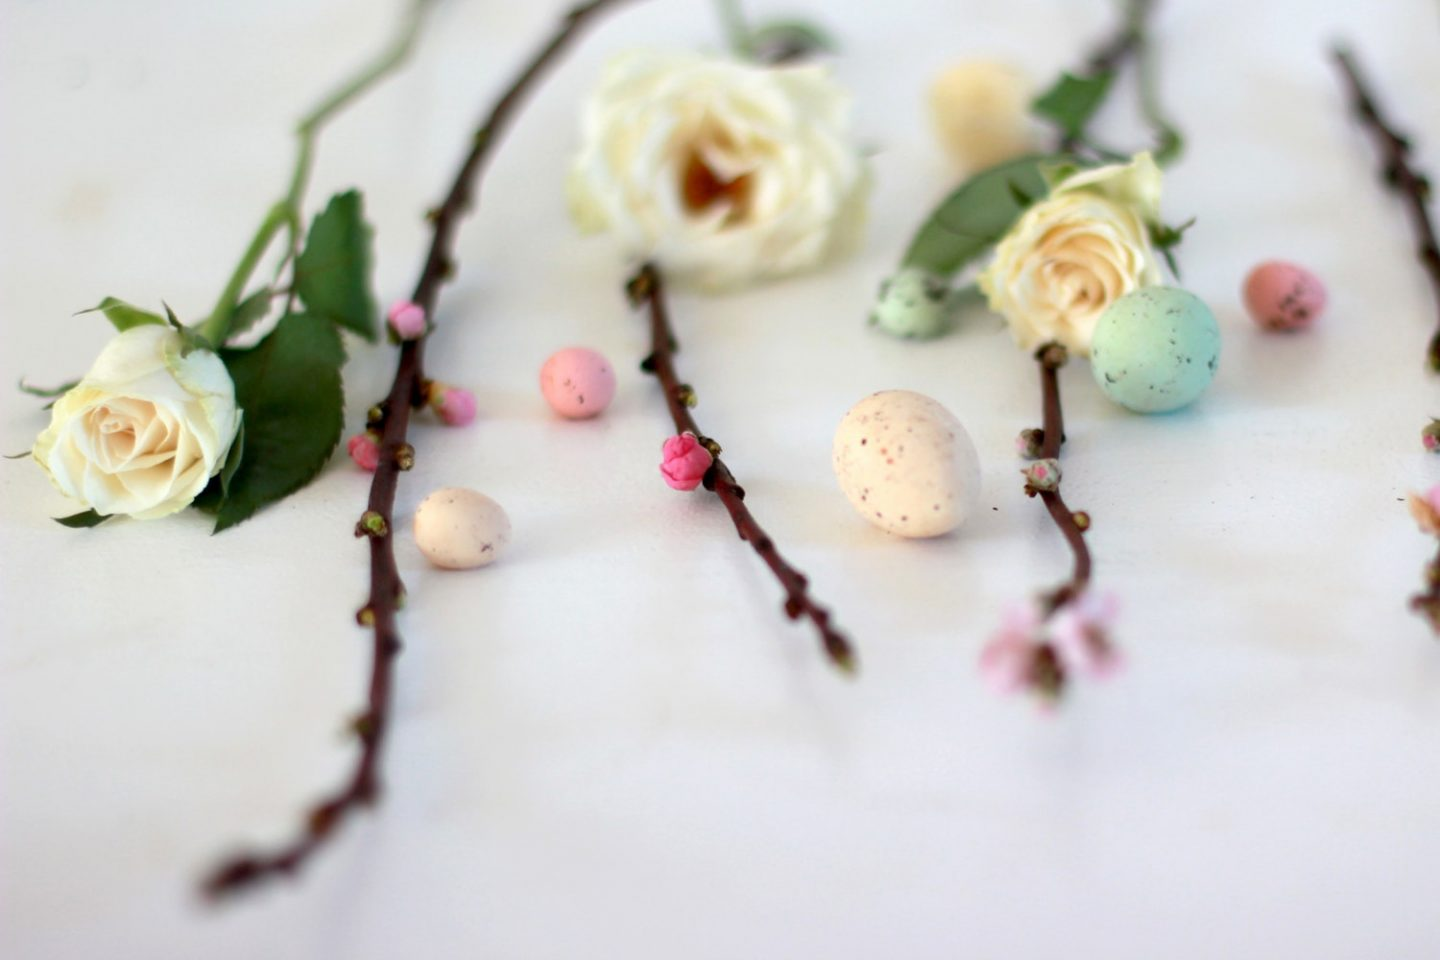 Last Minute Easter Egg and Gift Ideas